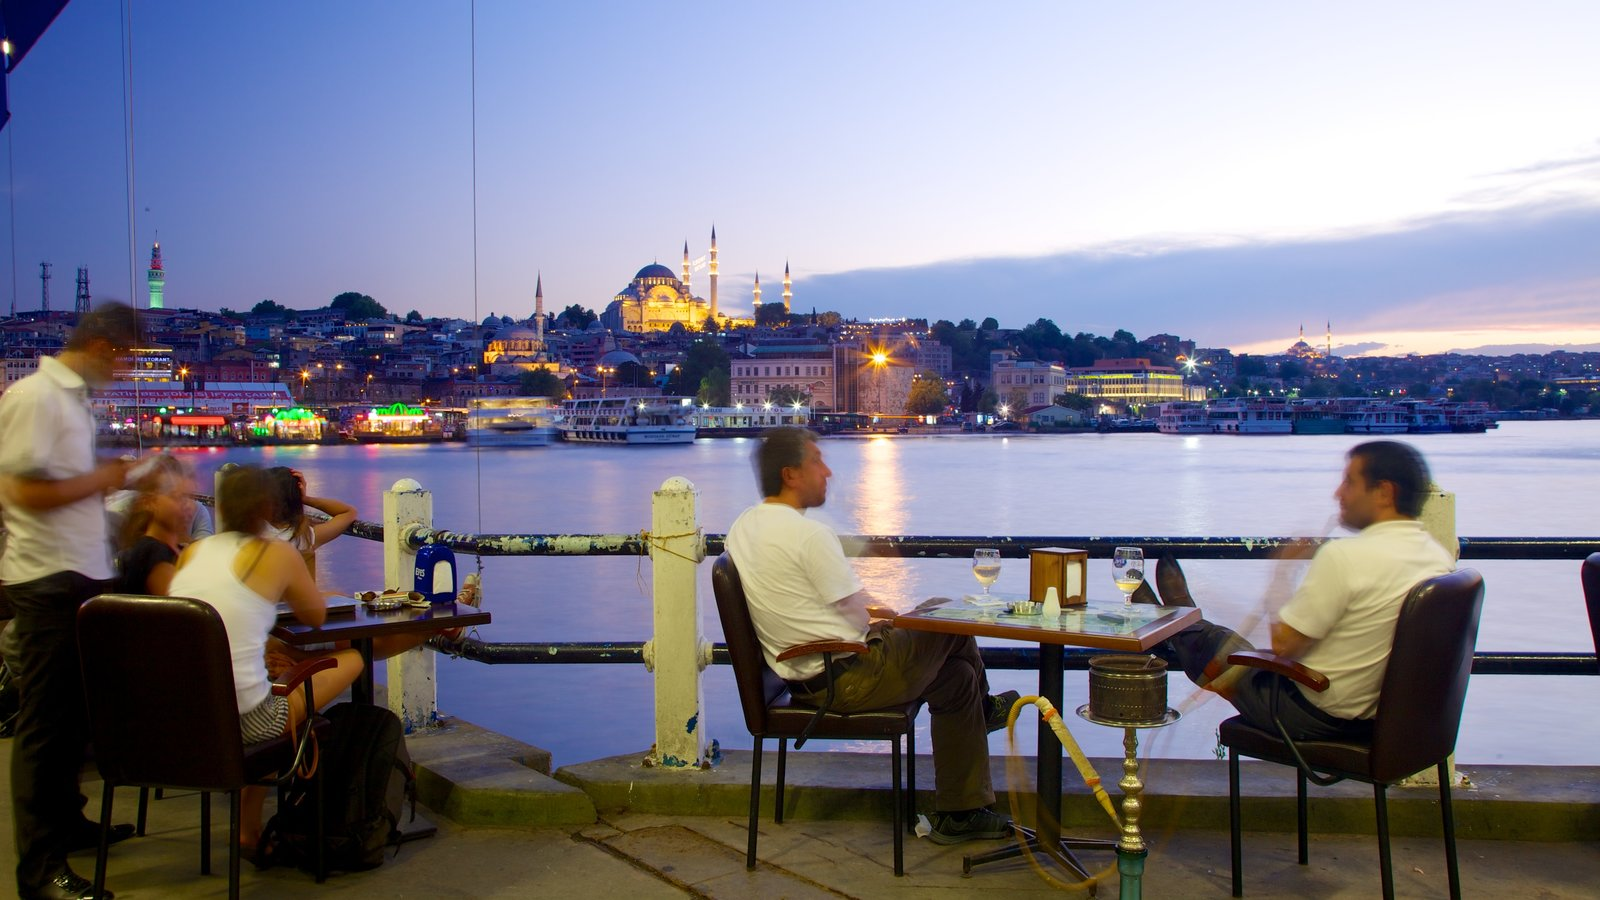 Galata Bridge which includes cafe lifestyle, a coastal town and a bay or harbor